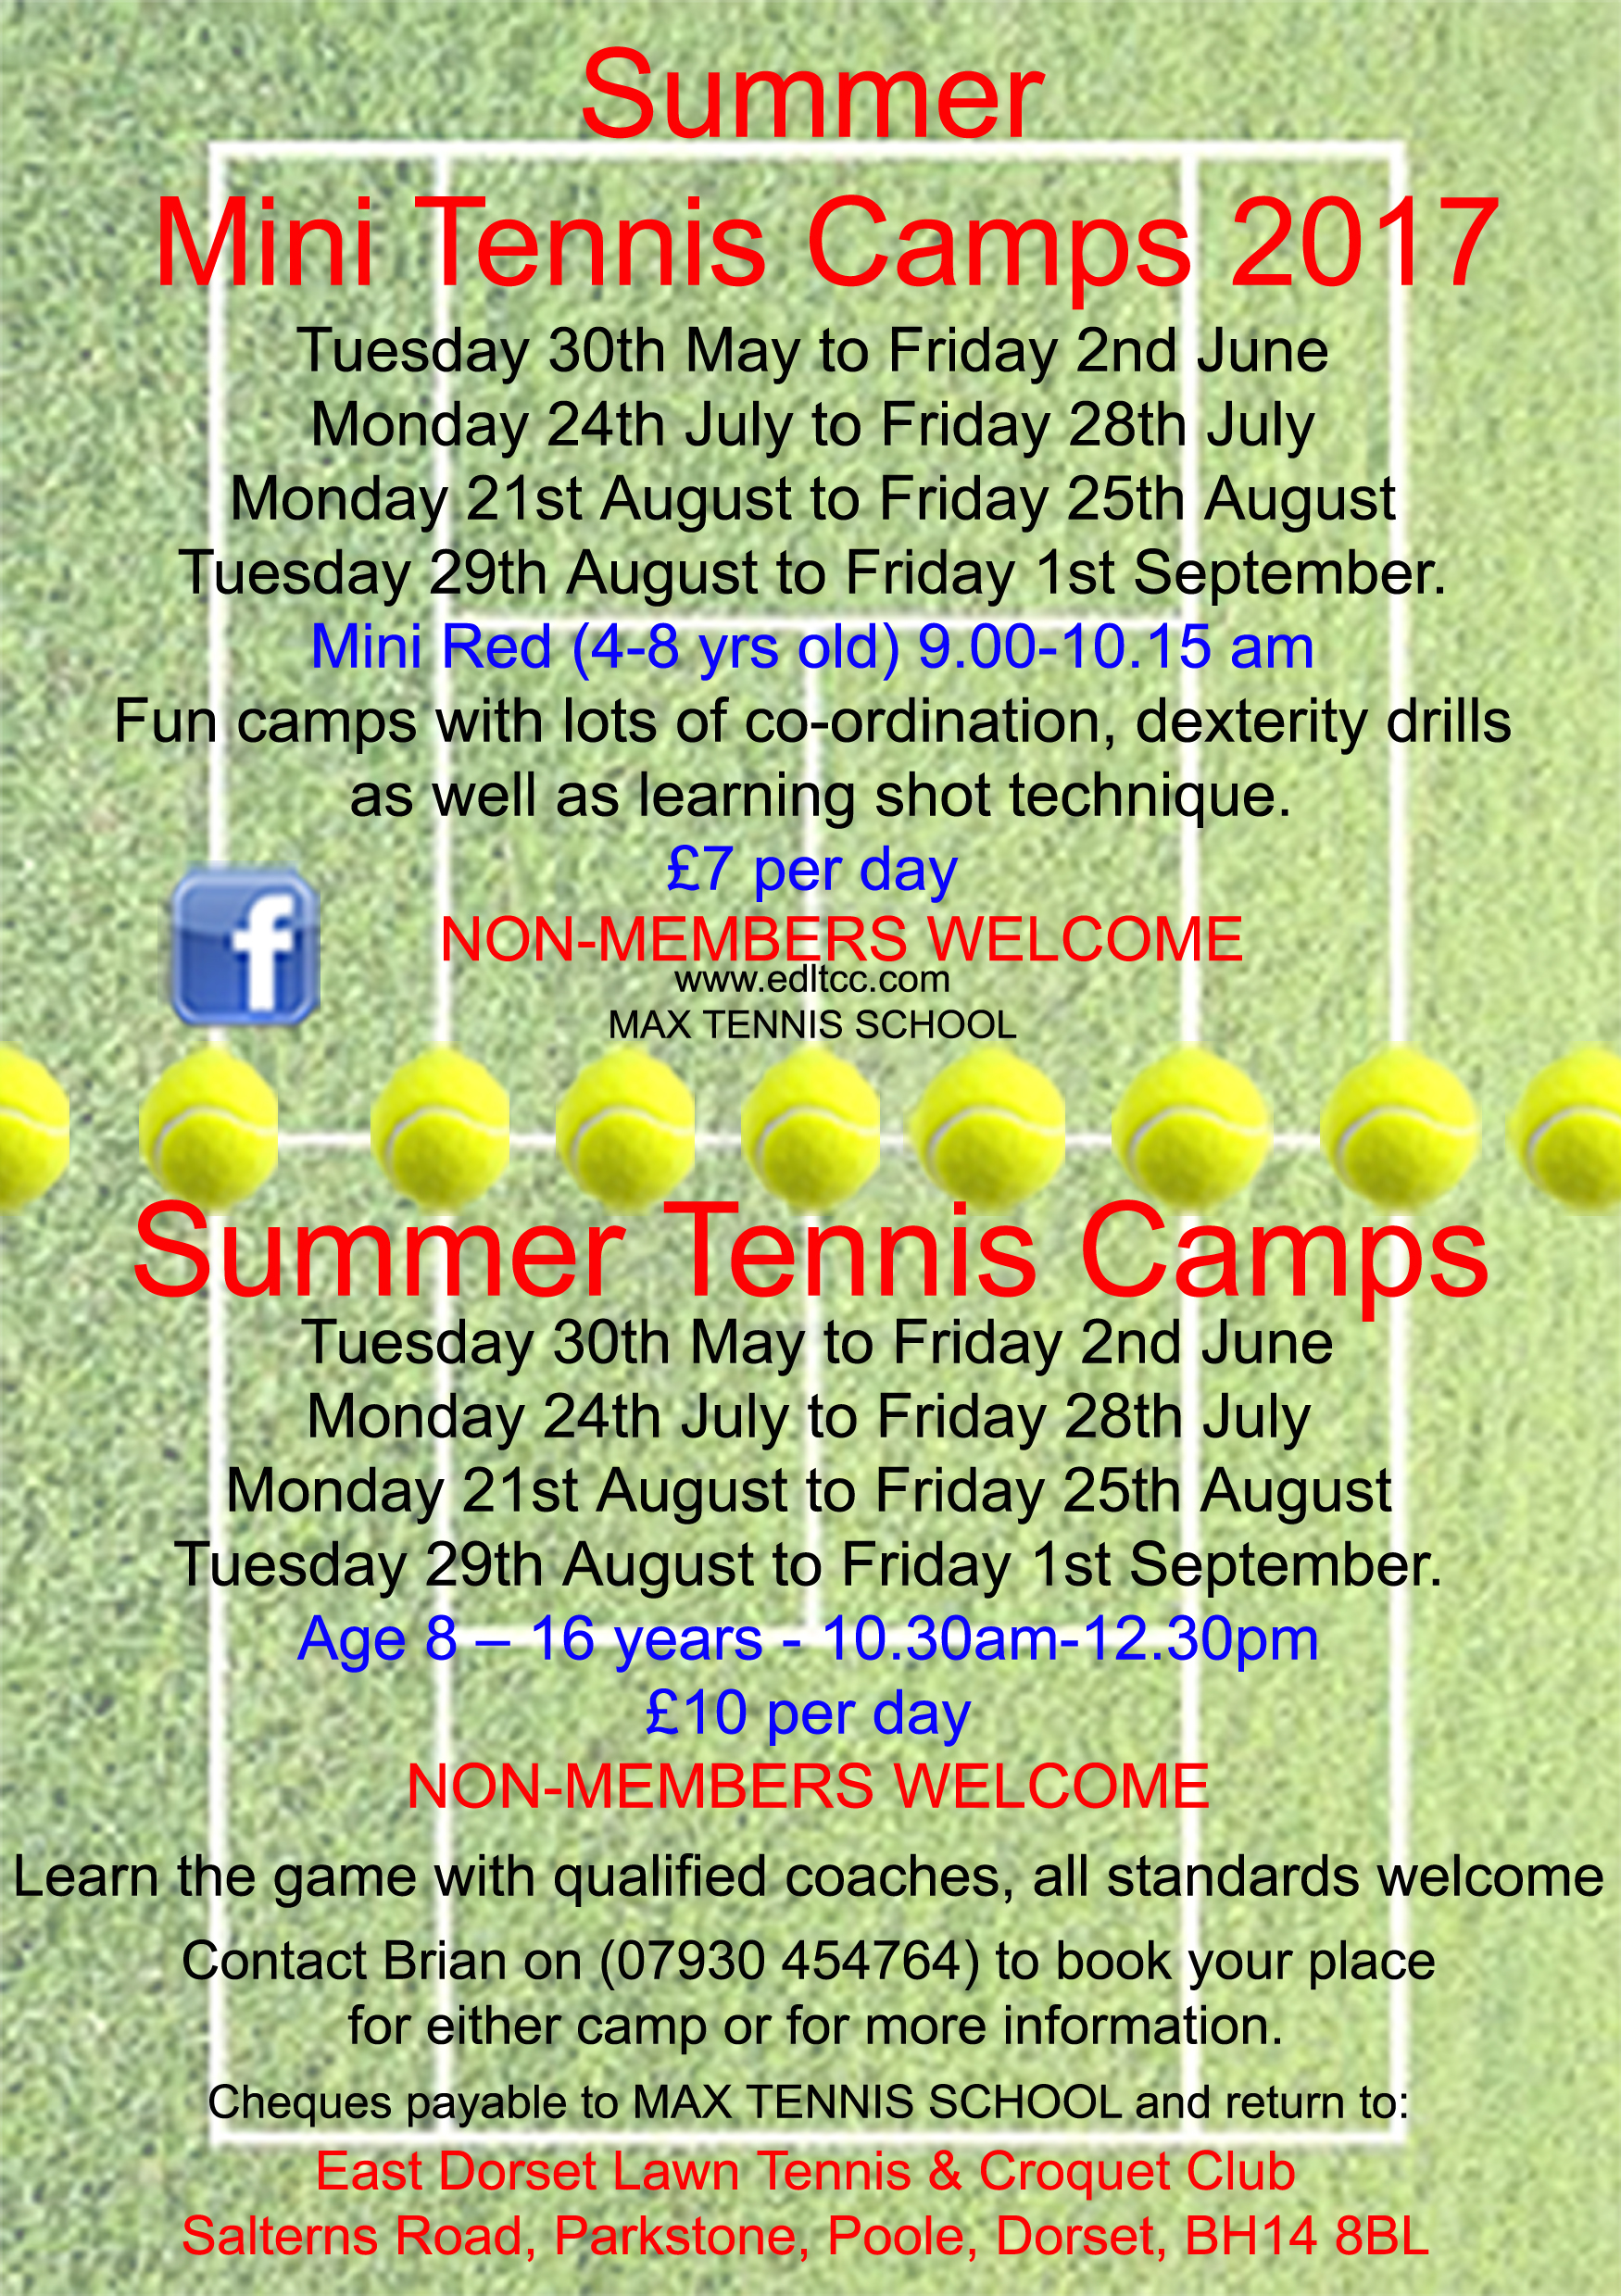 Summer Tennis Camps 2017